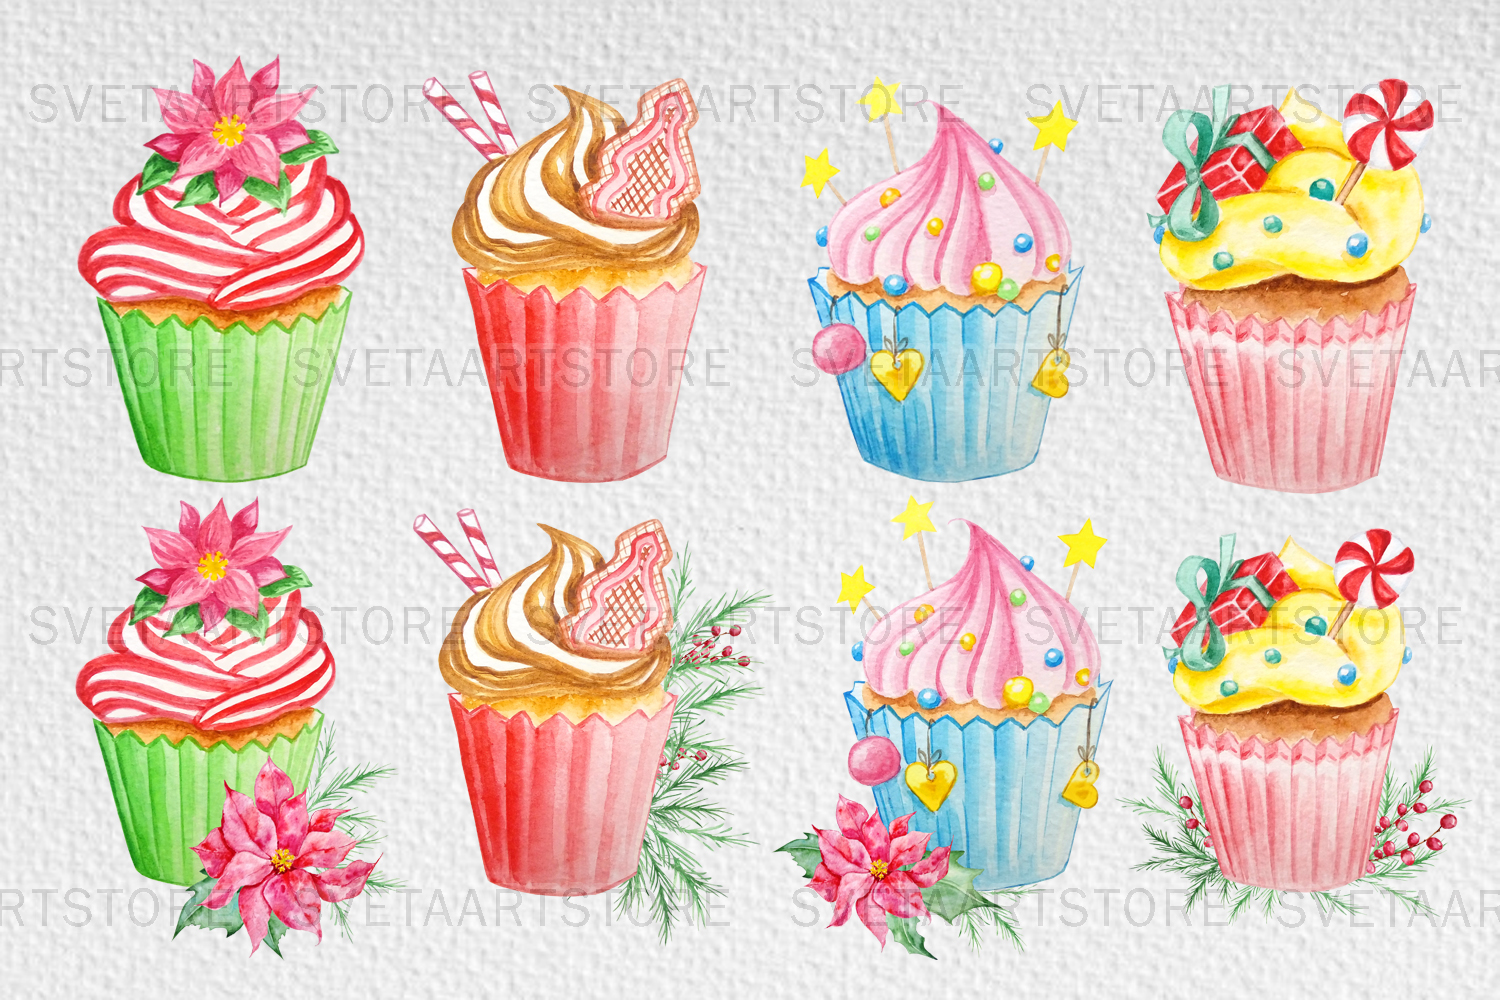 Christmas cupcakes clipart, watercolor cake example image 2